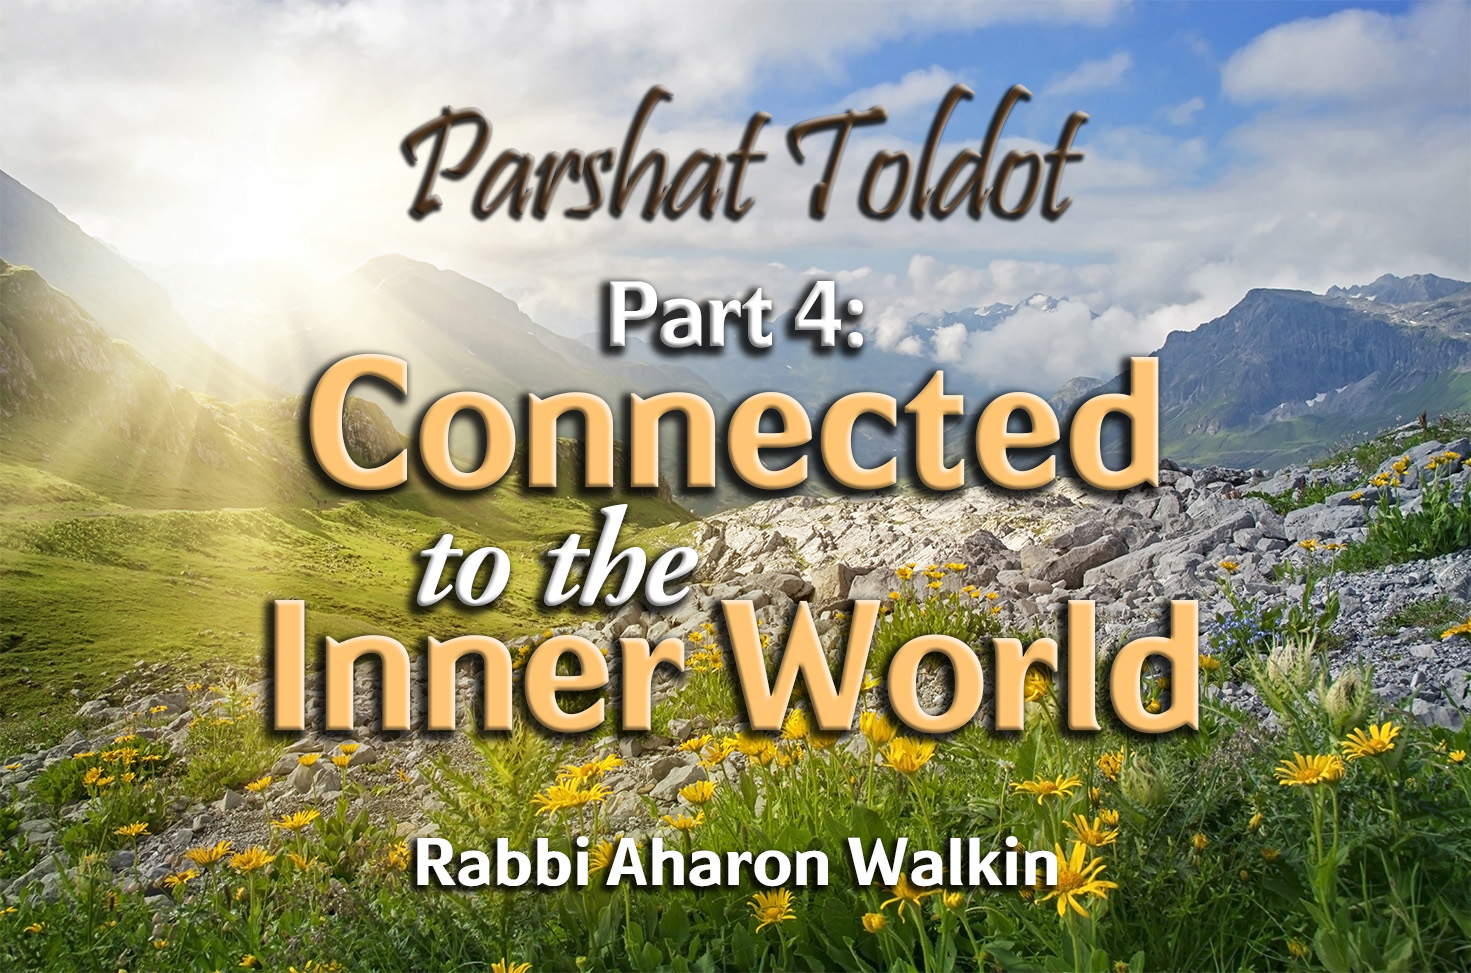 Photo of Parshat Toldot – Part 4 – Connected to the Inner World